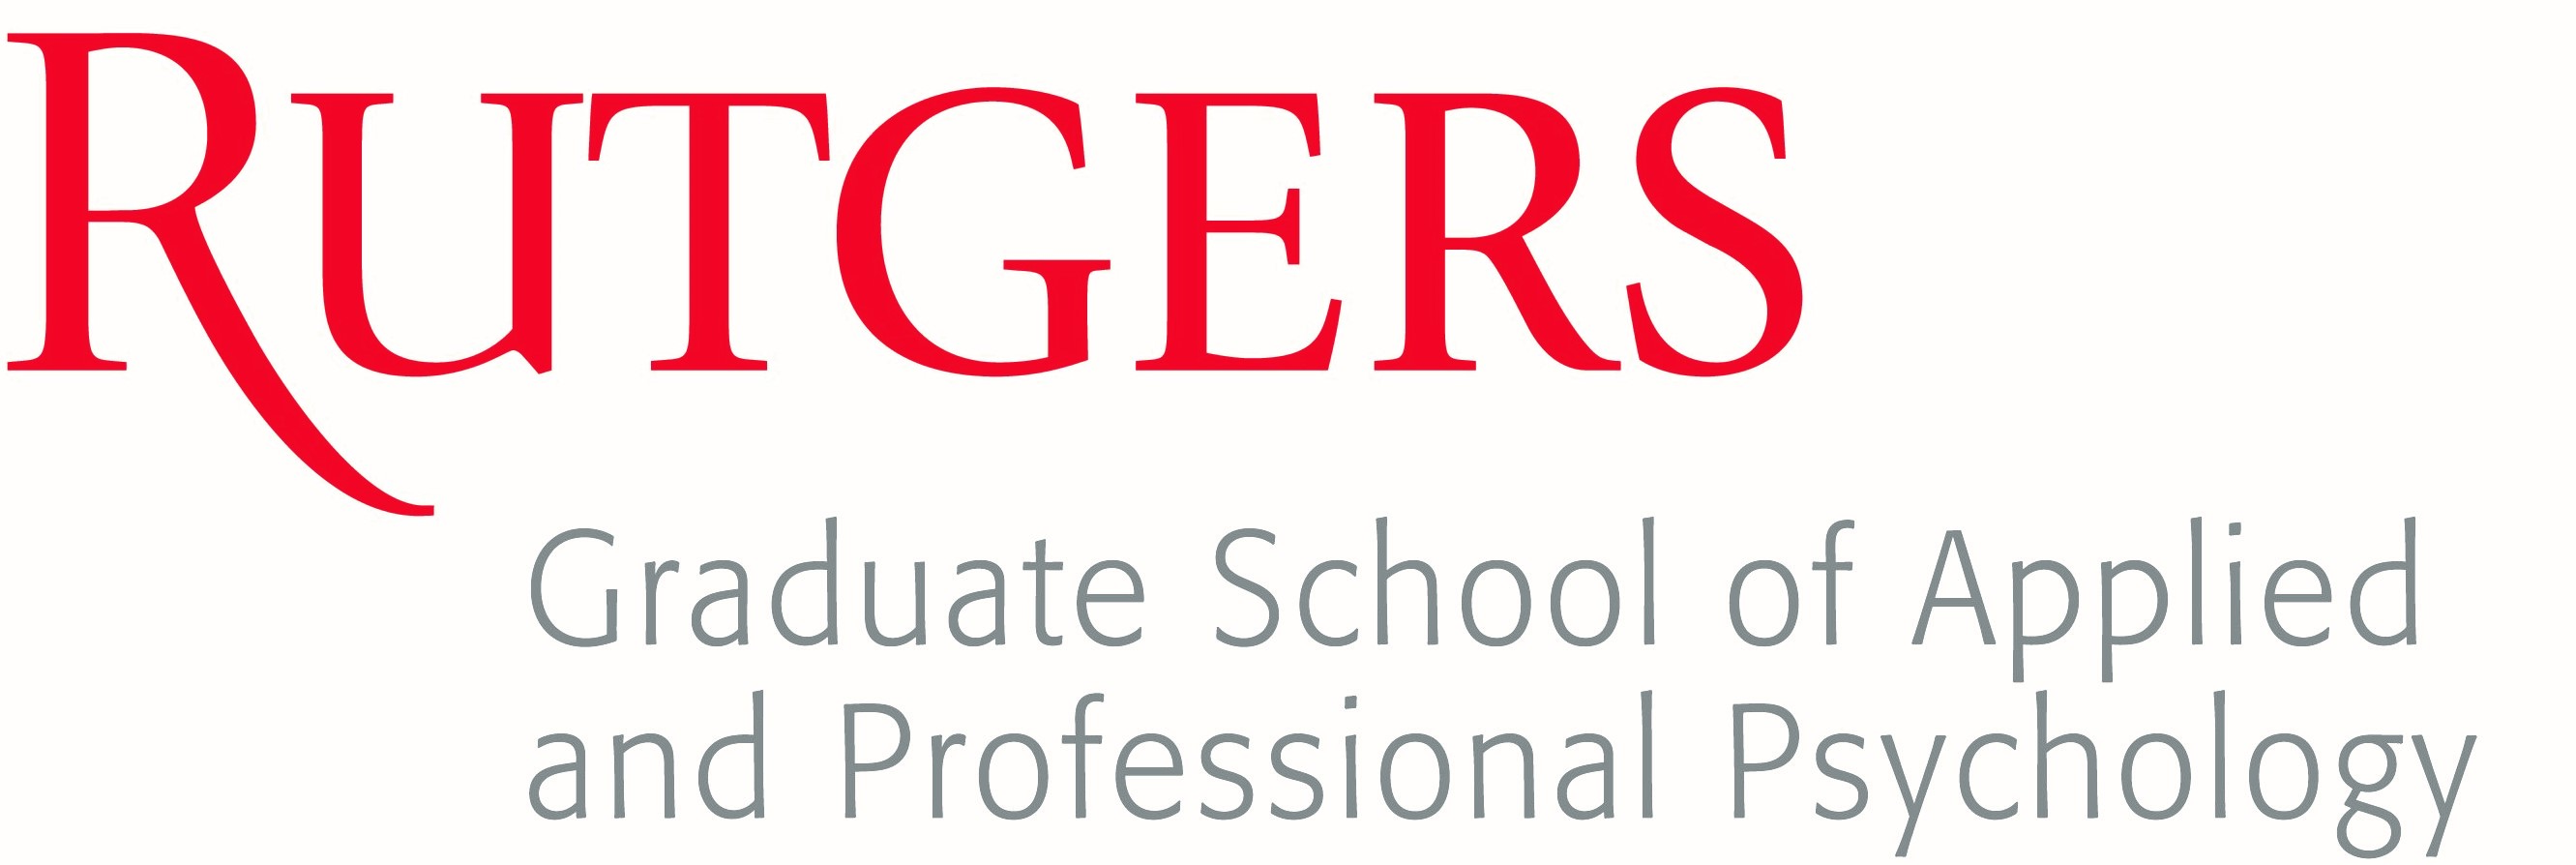 Graduate School of Applied & Professional Psychology Rutgers University The State University of New Jersey